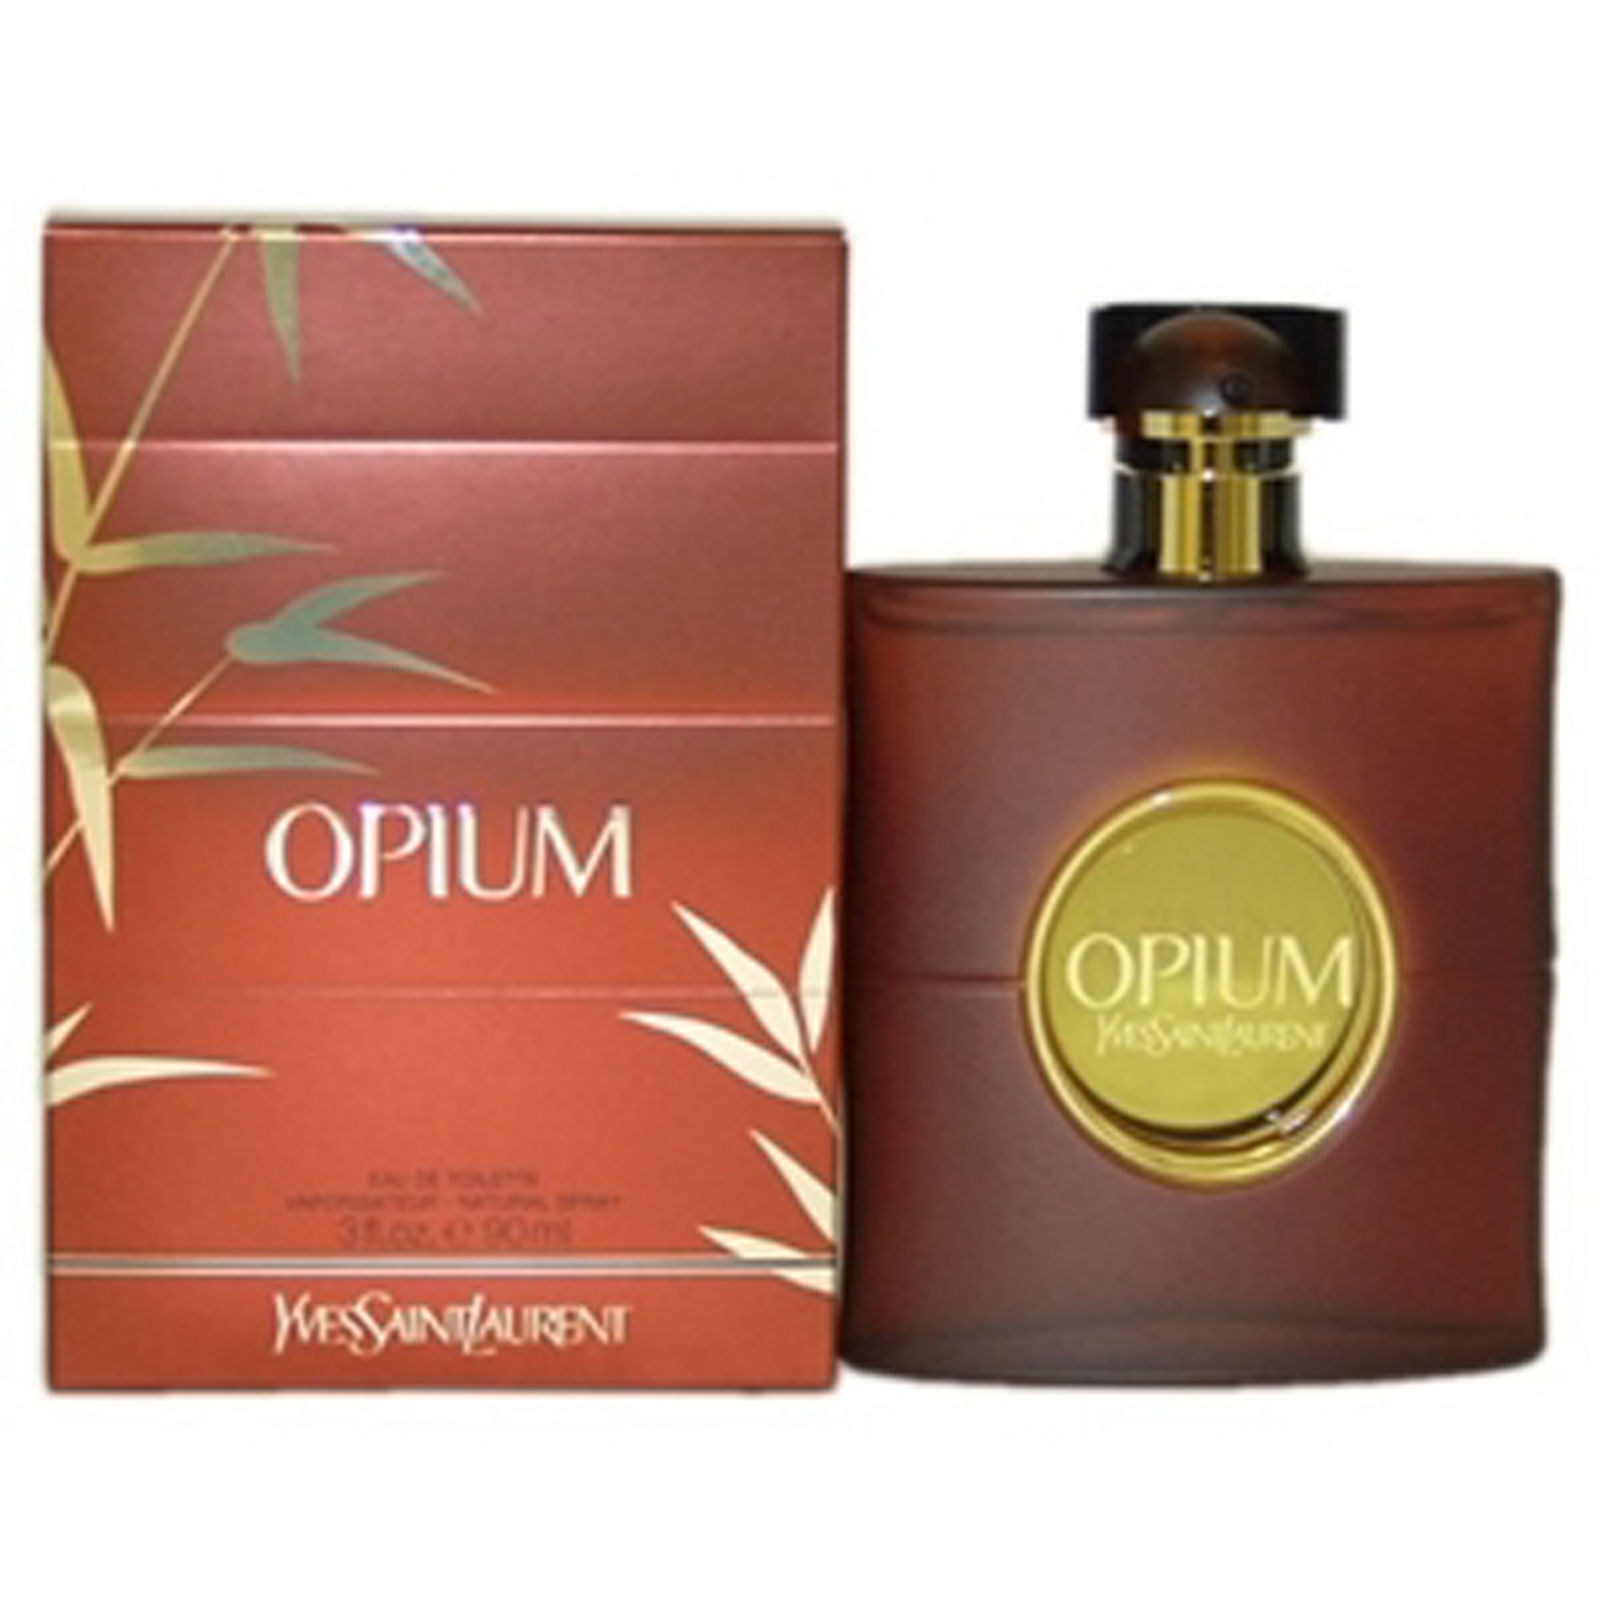 YVES SAINT LAURENT OPIUM EAU DE TOILETTE PROFUMO DONNA 30 ml